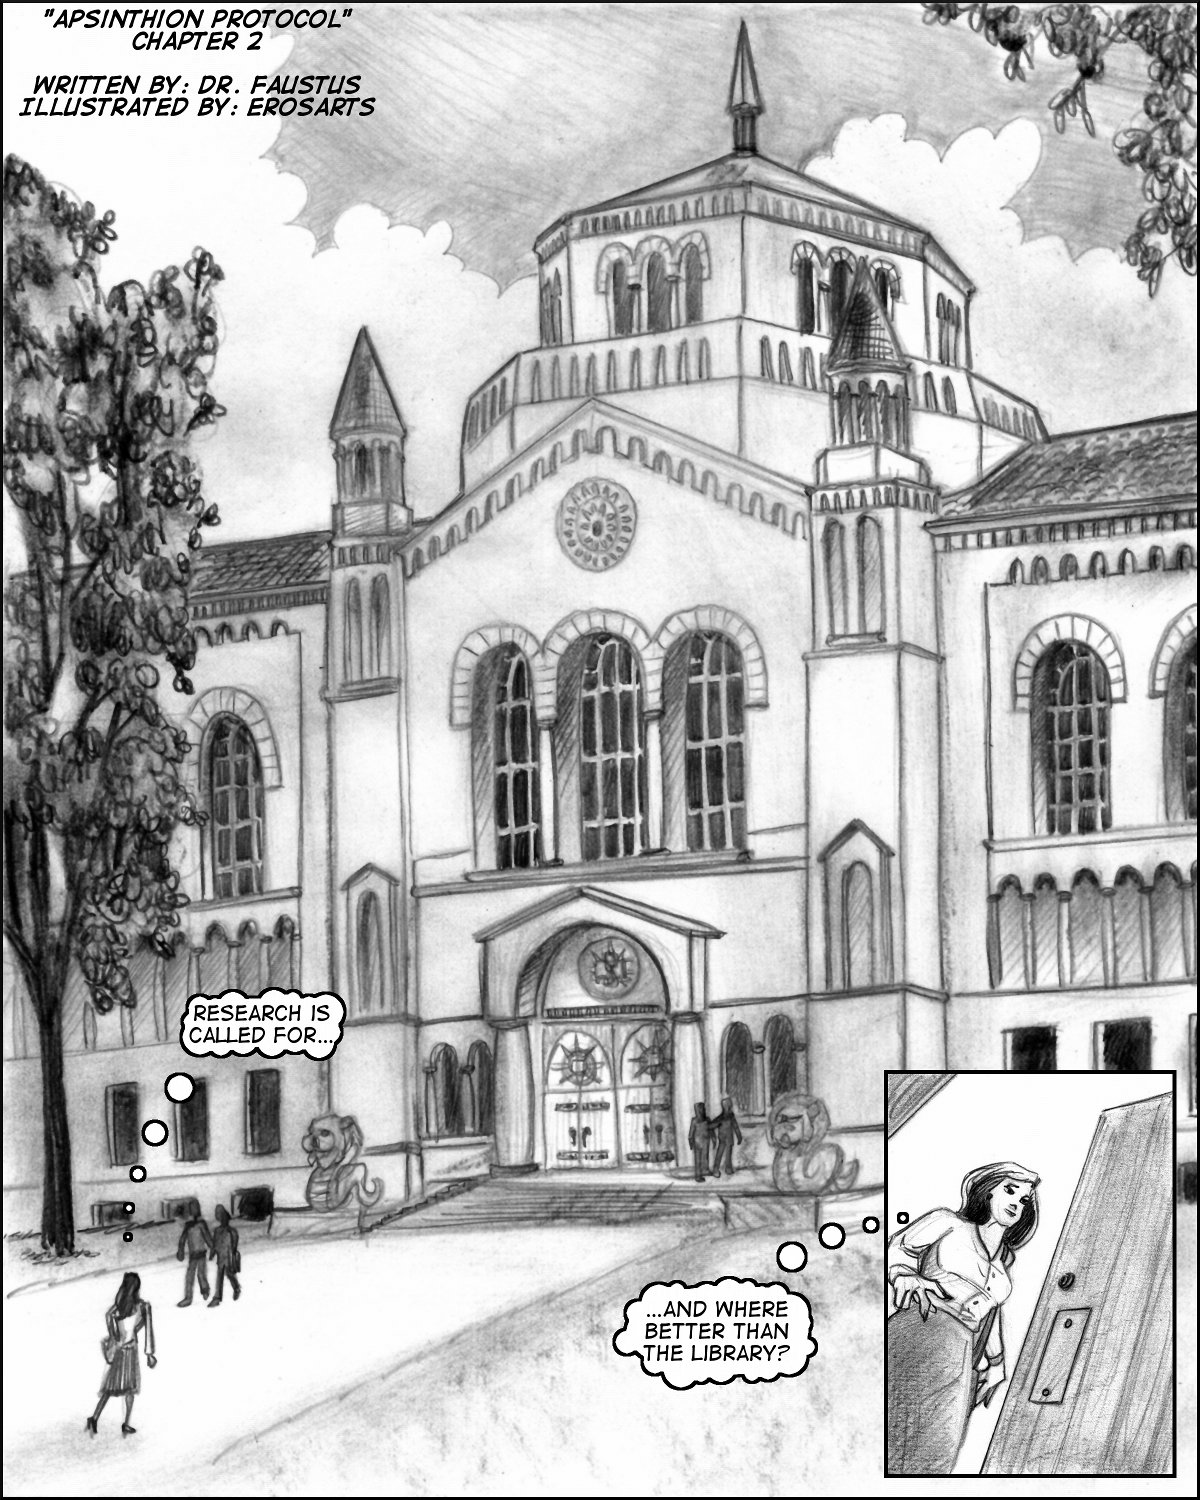 Splash panel for Chapter Two, showing the Gnosis College Library